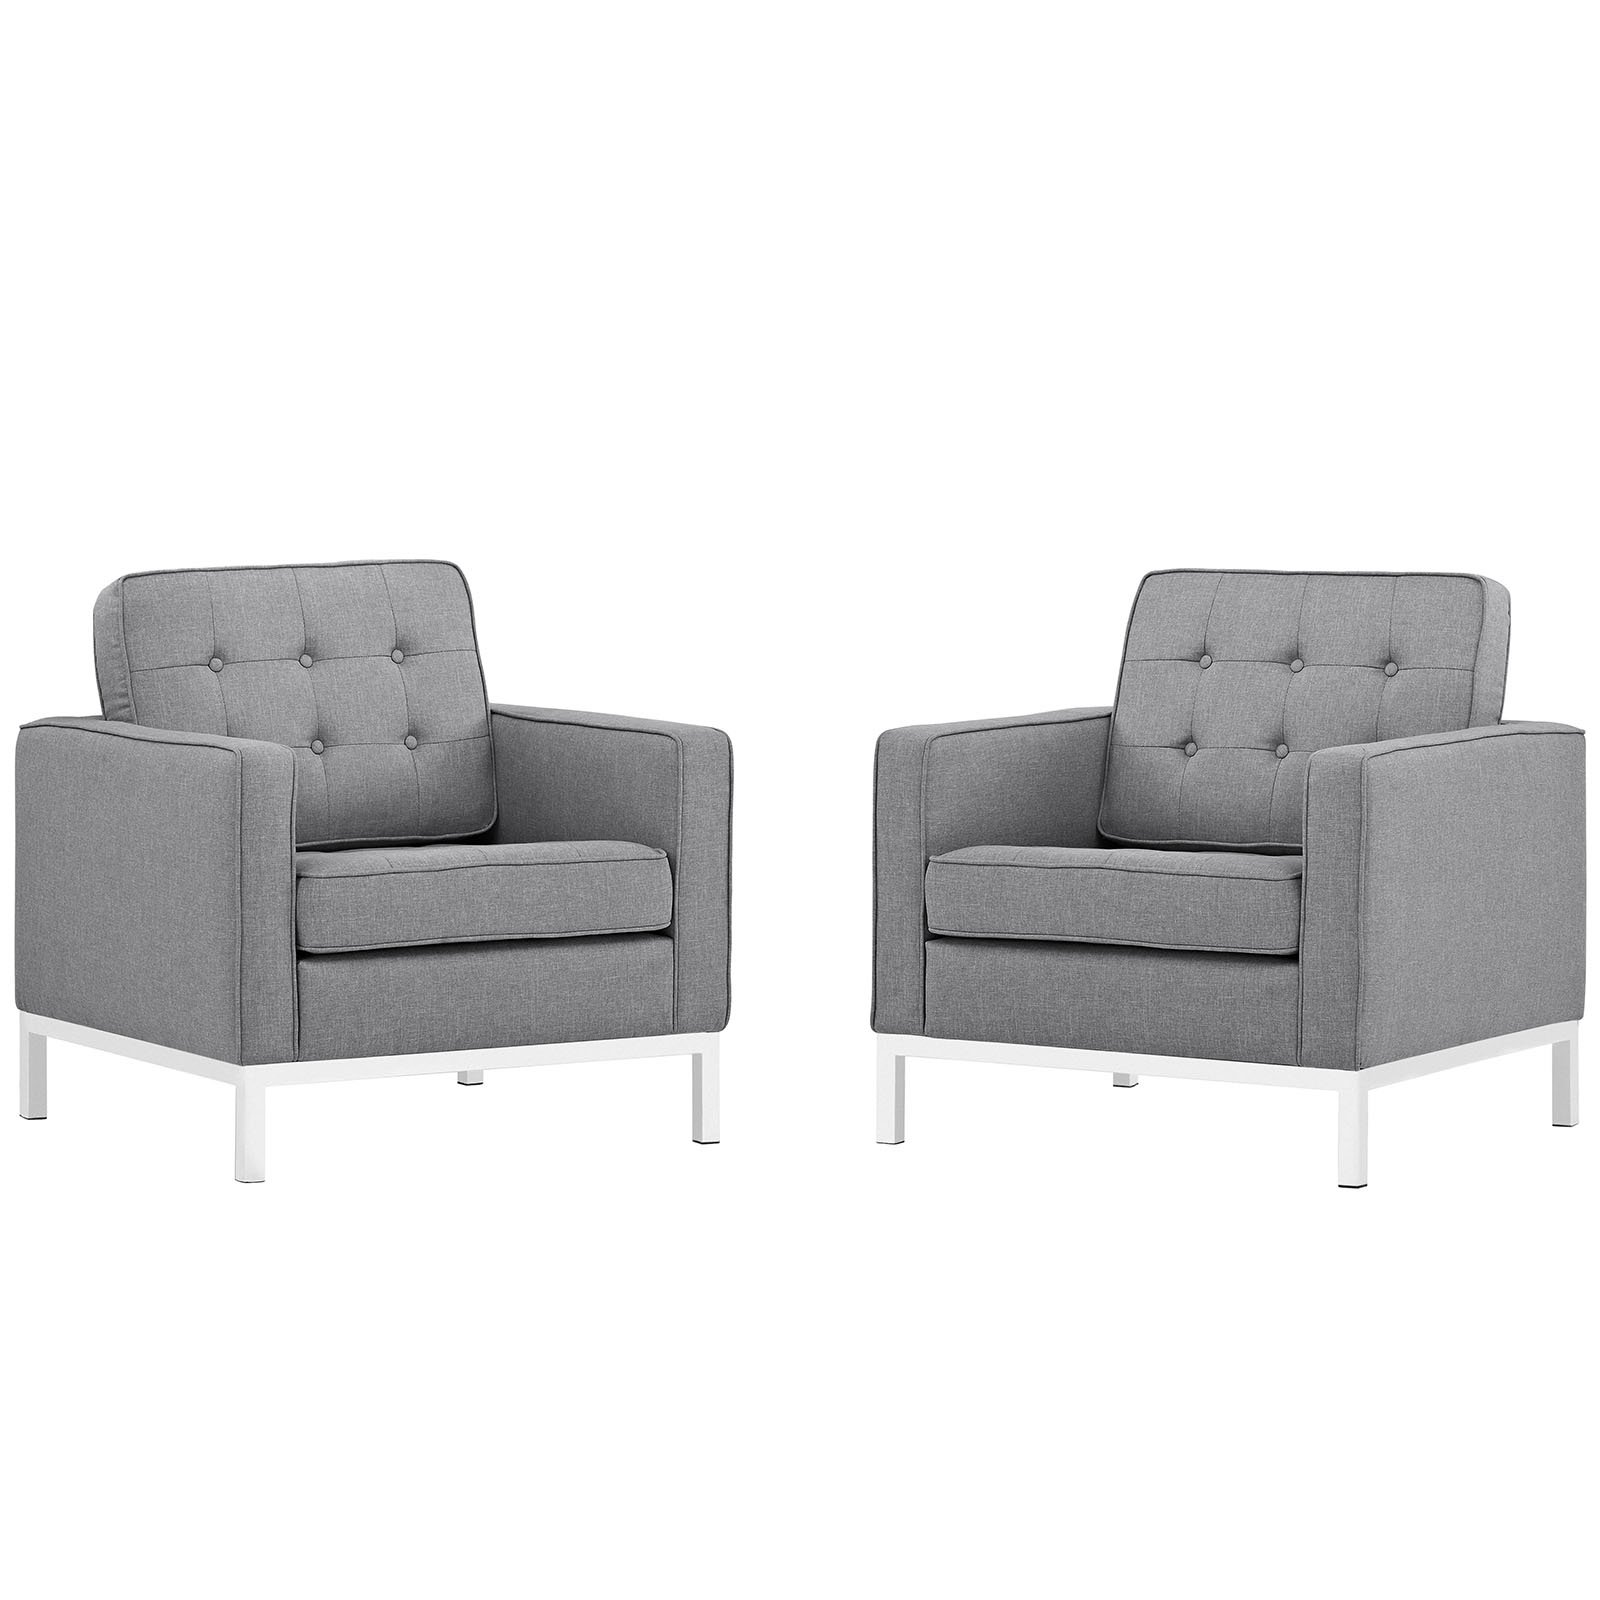 Modway Loft Upholstered Fabric Mid-Century Modern Accent Arm Lounge Chairs in Light Gray - Set of 2 by Modway